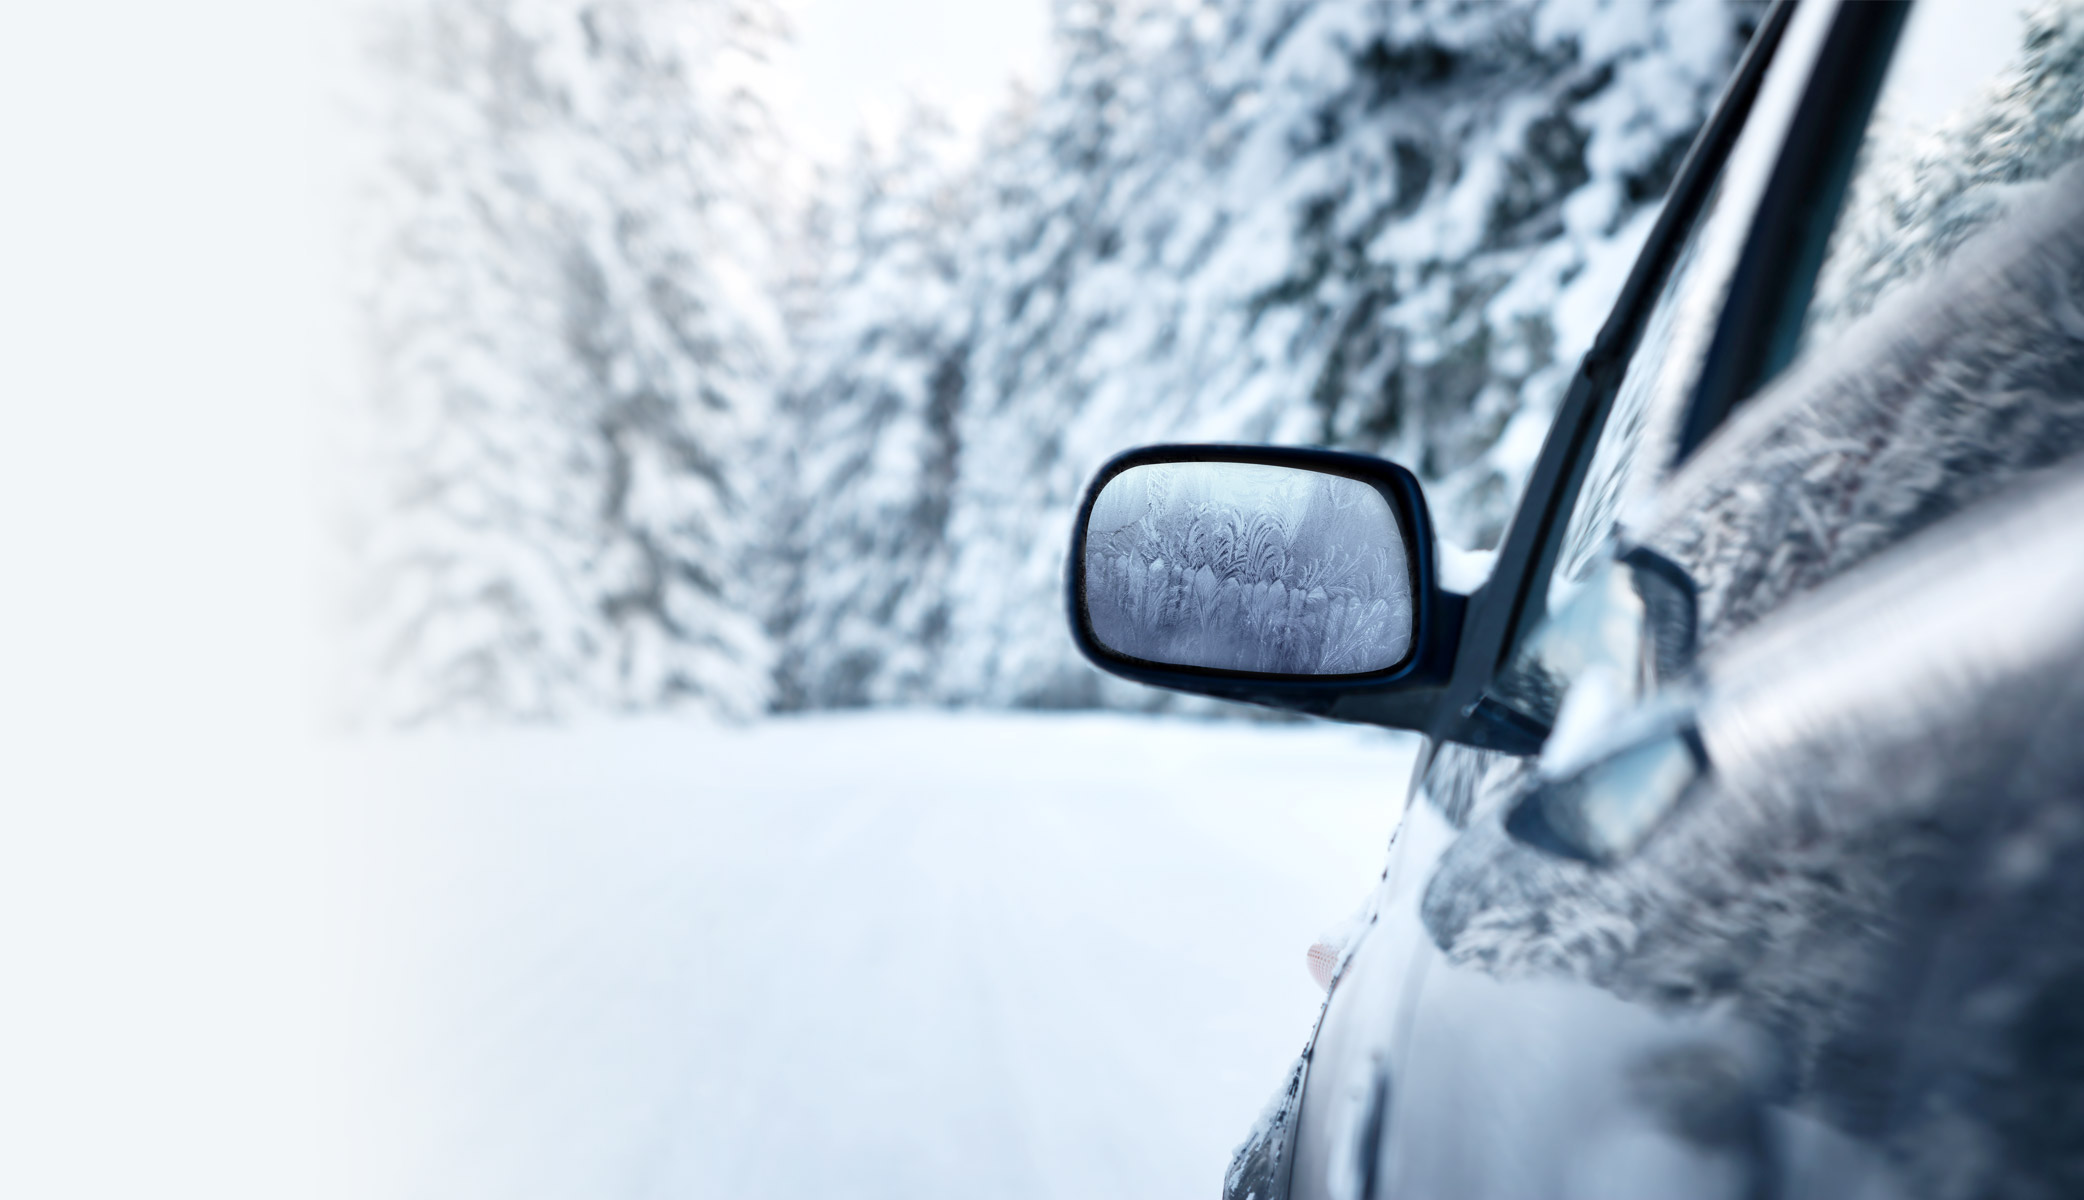 Tips for De-Icing your Car